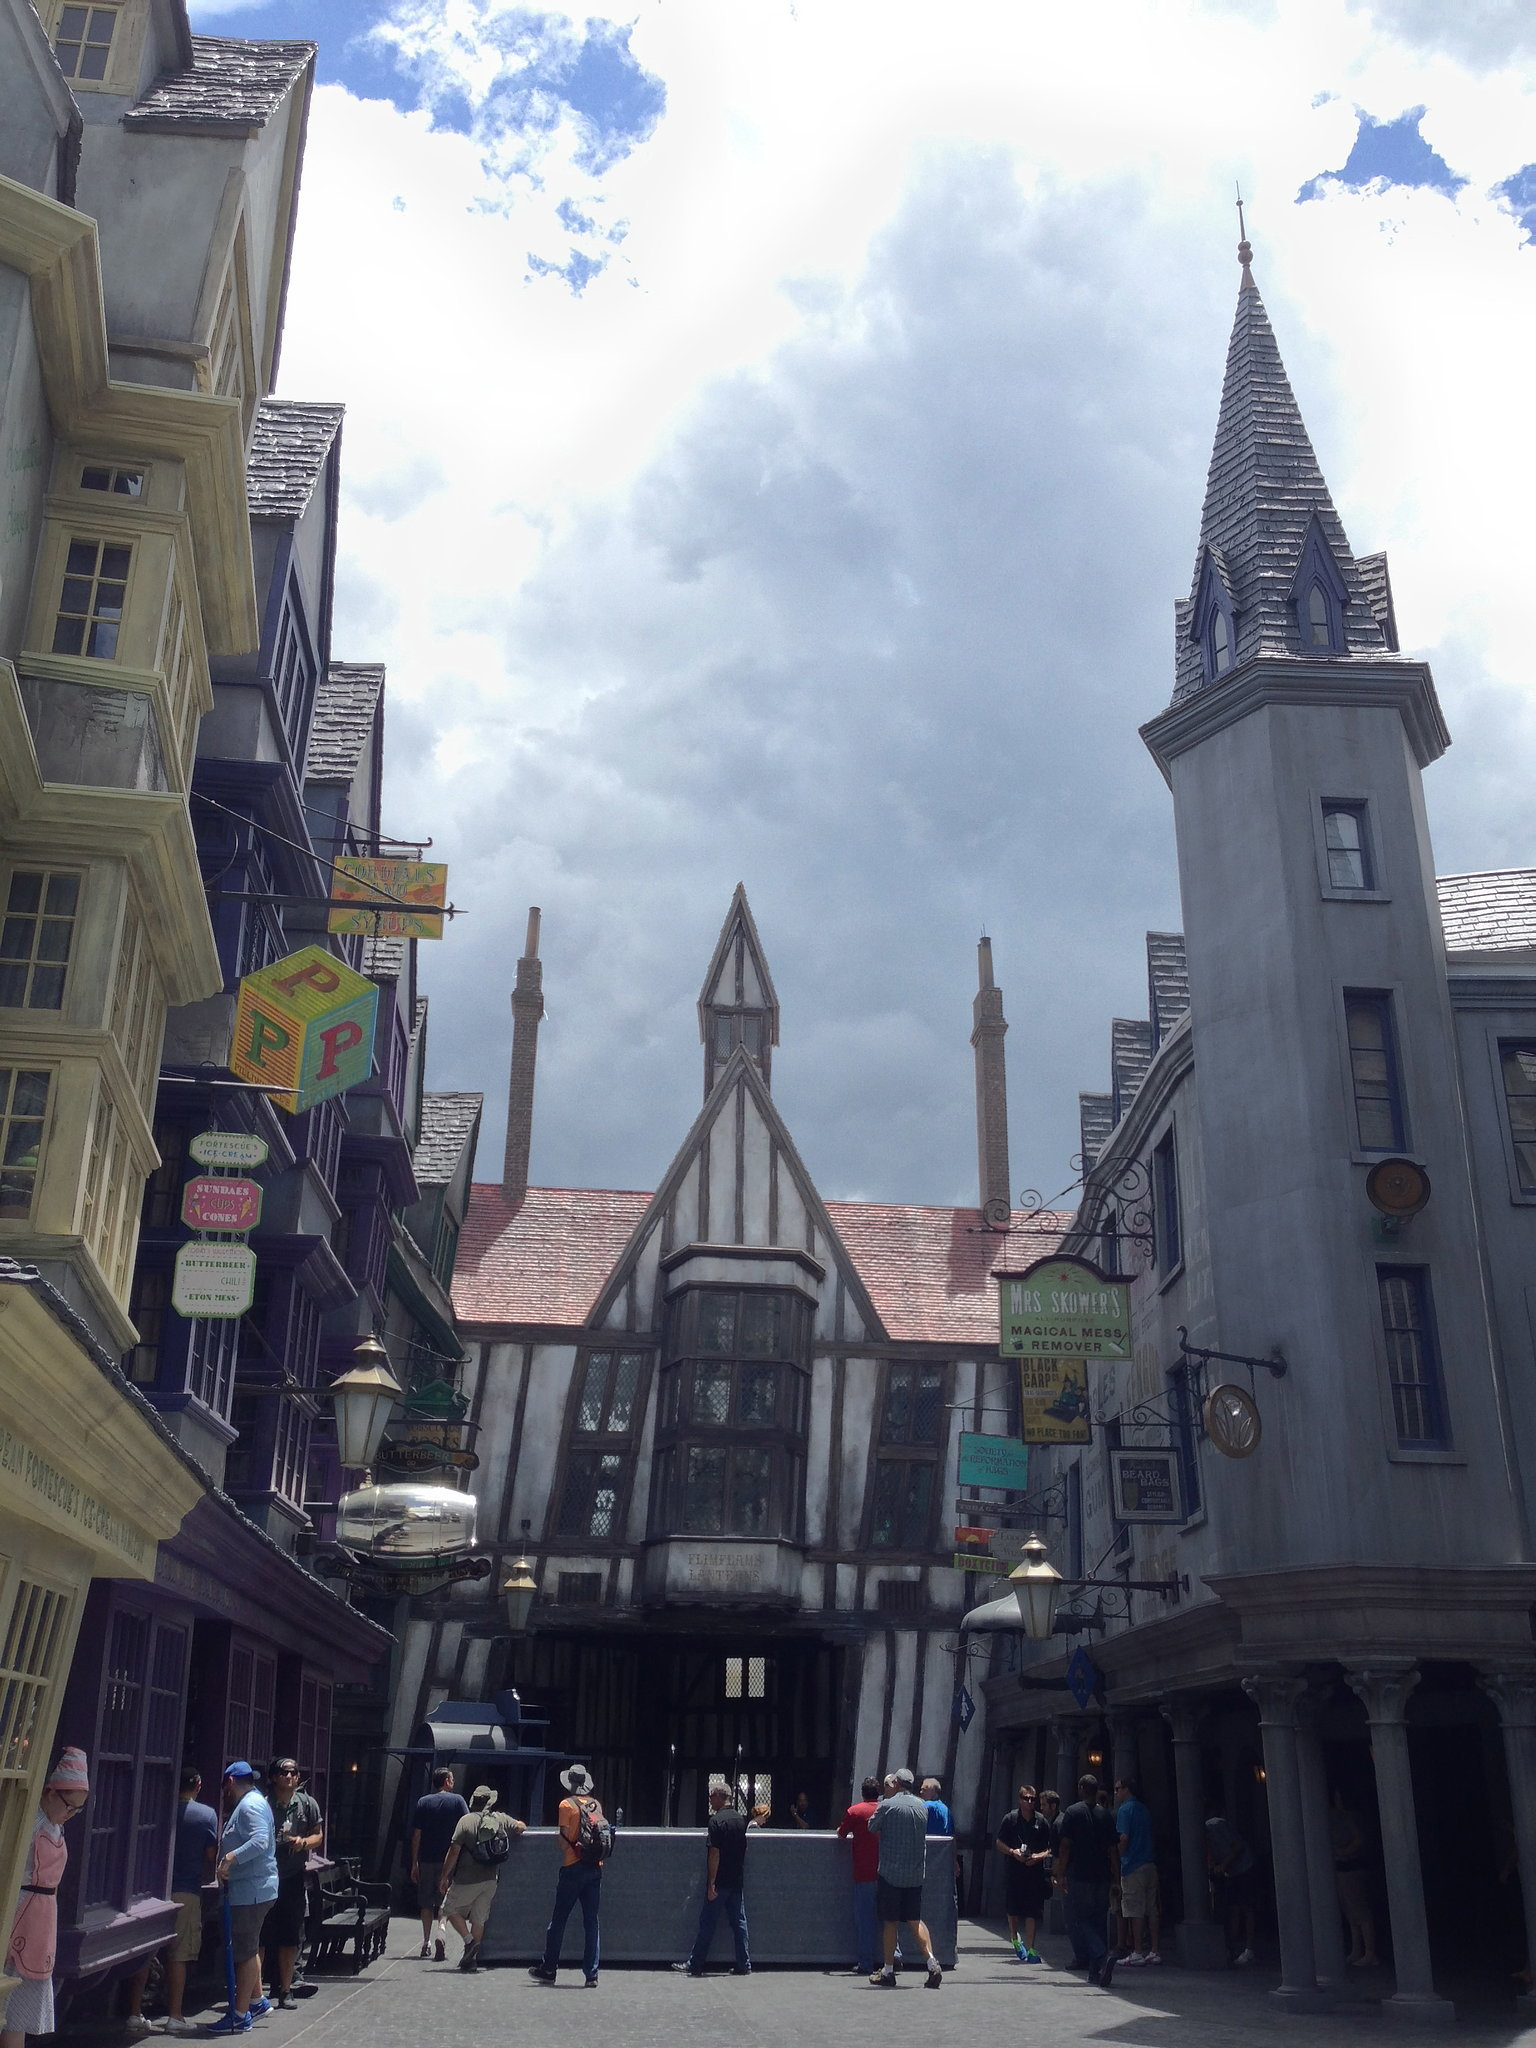 Check out a section of Diagon Alley.